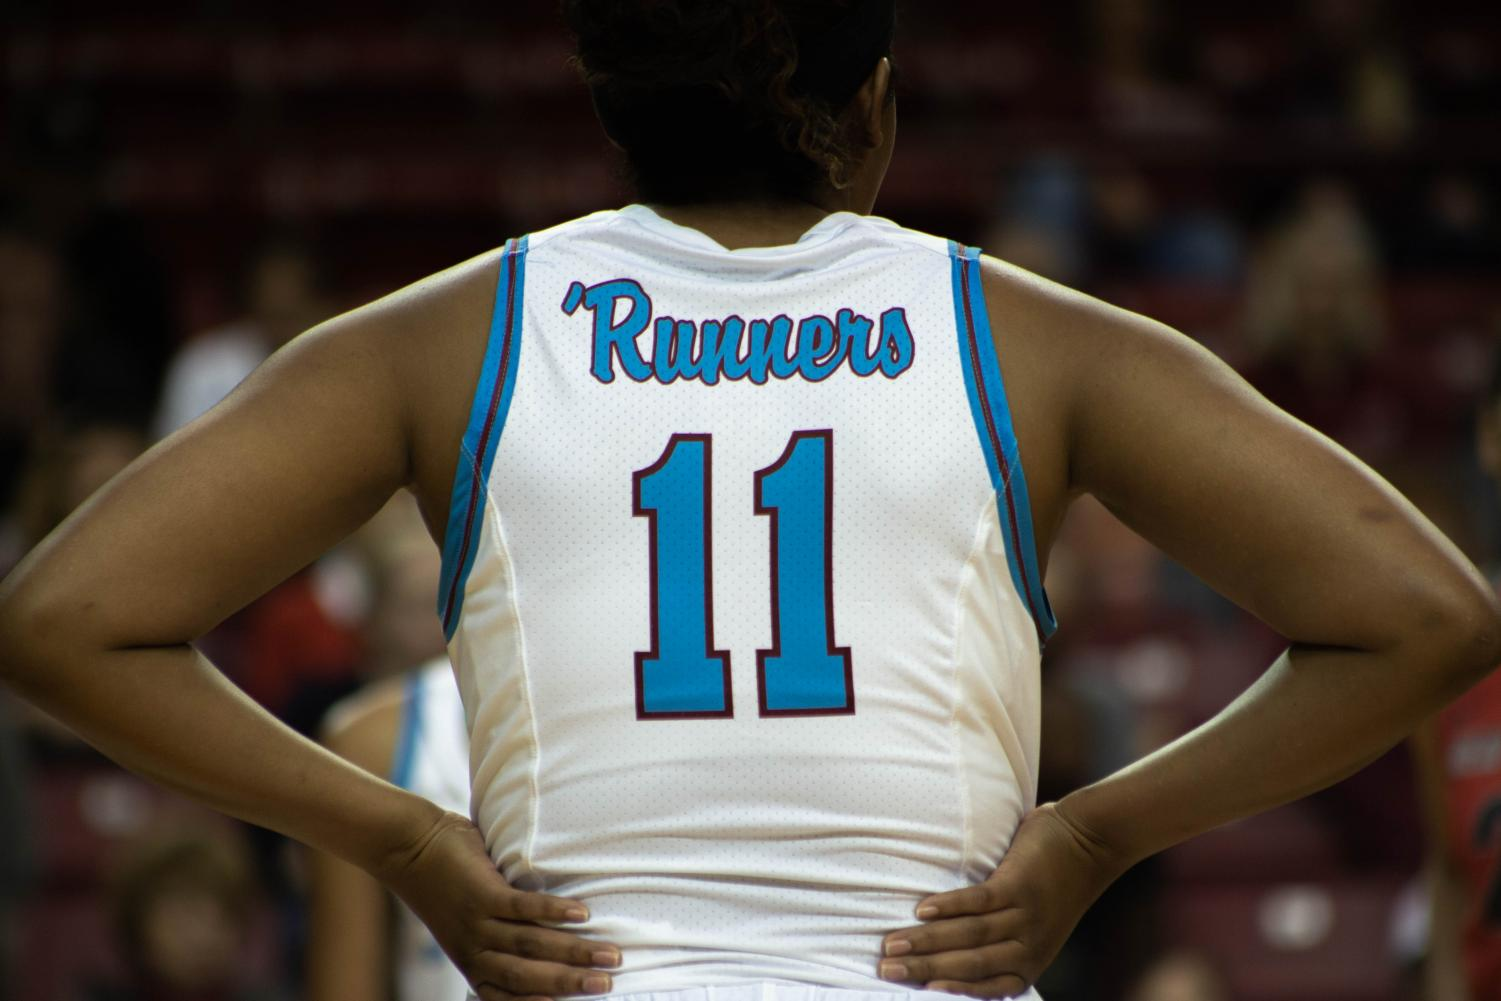 New Mexico State can't finish the comeback as they lose in devastating fashion to UCR.